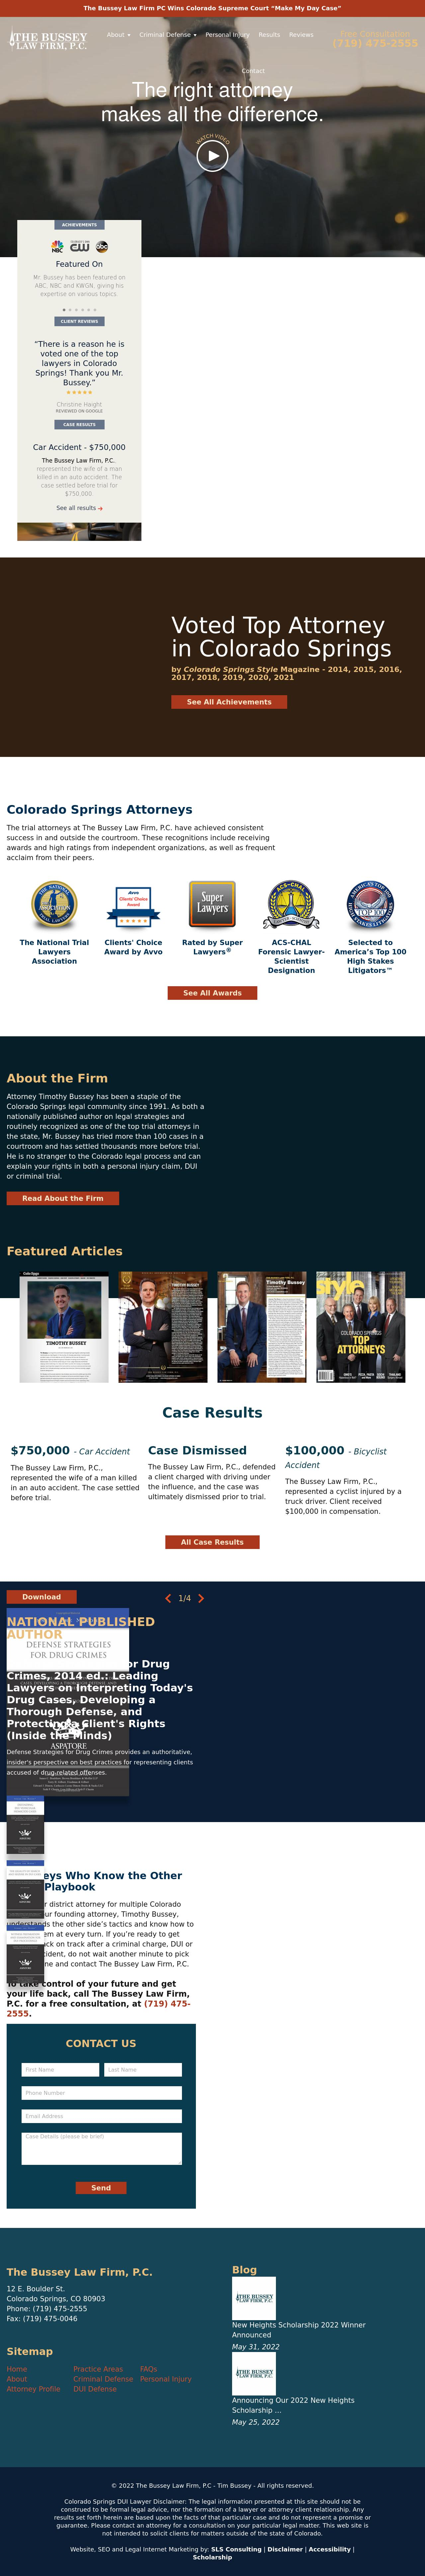 The Bussey Law Firm, P.C. - Colorado Springs CO Lawyers